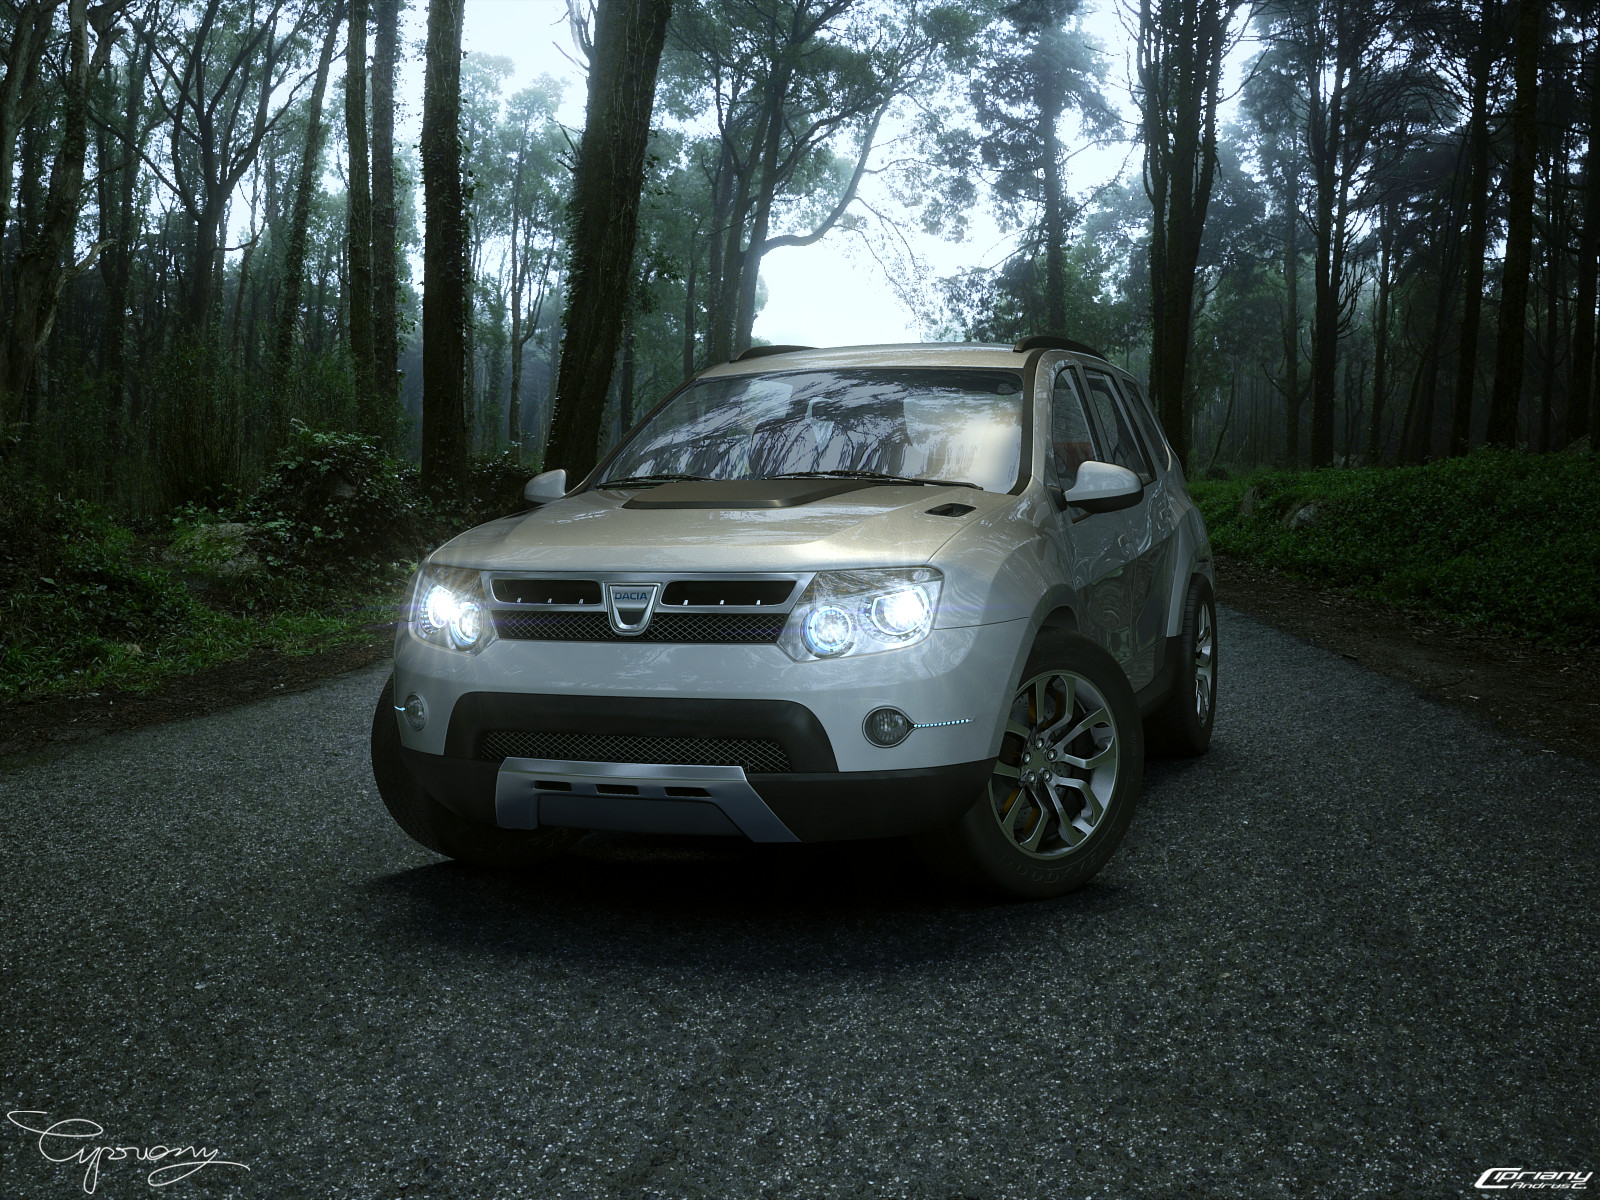 dacia duster tuning 4 lights by cipriany on deviantart. Black Bedroom Furniture Sets. Home Design Ideas